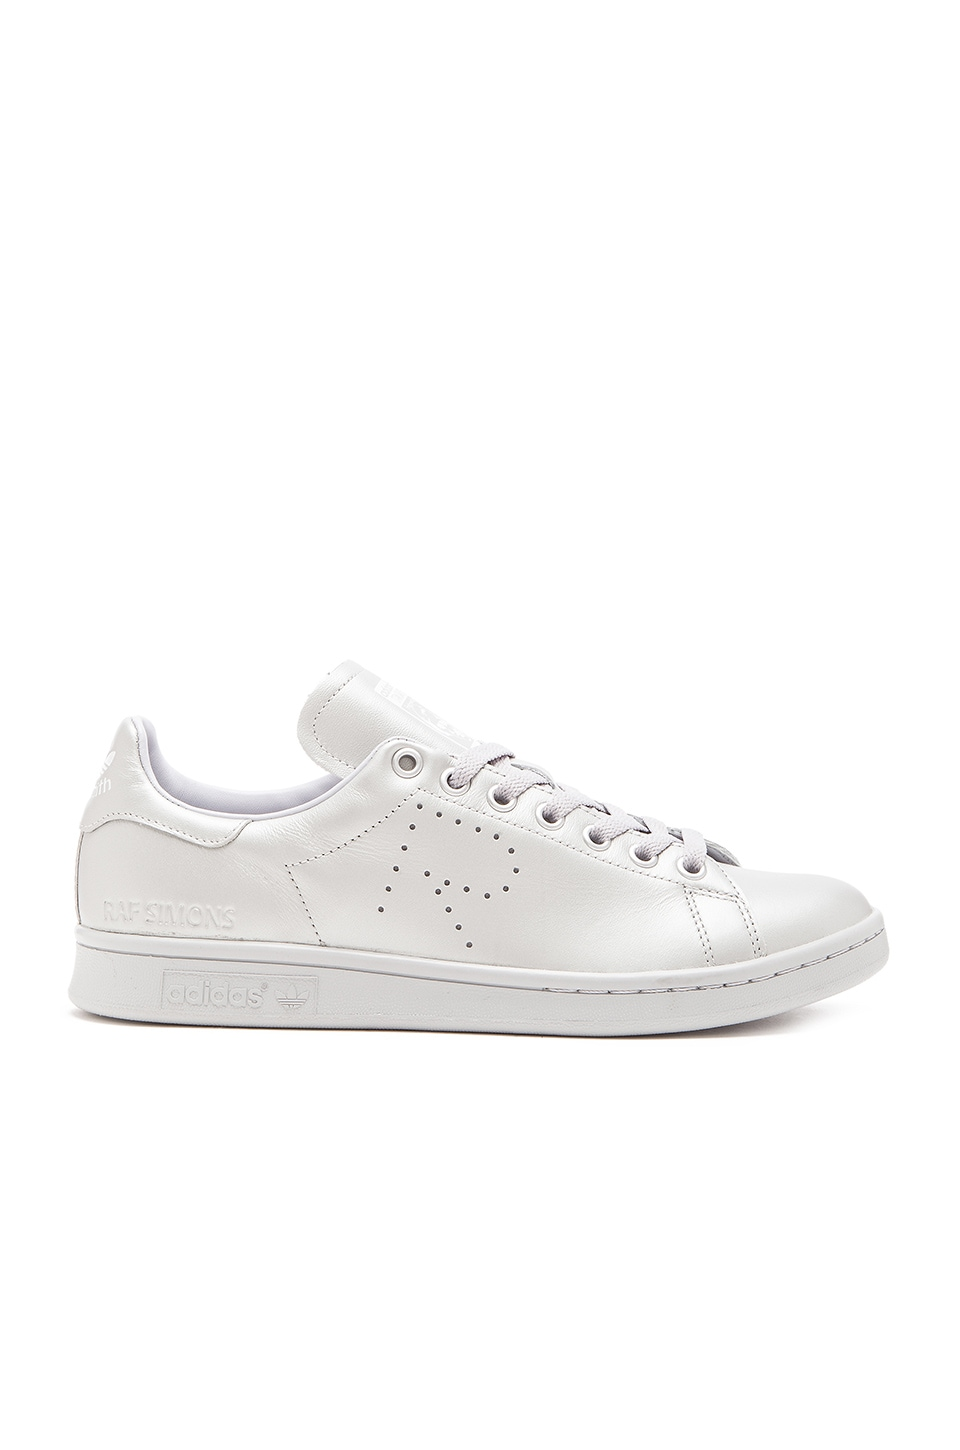 adidas by Raf Simons Stan Smith in Silver Met FTWR White Silver Met